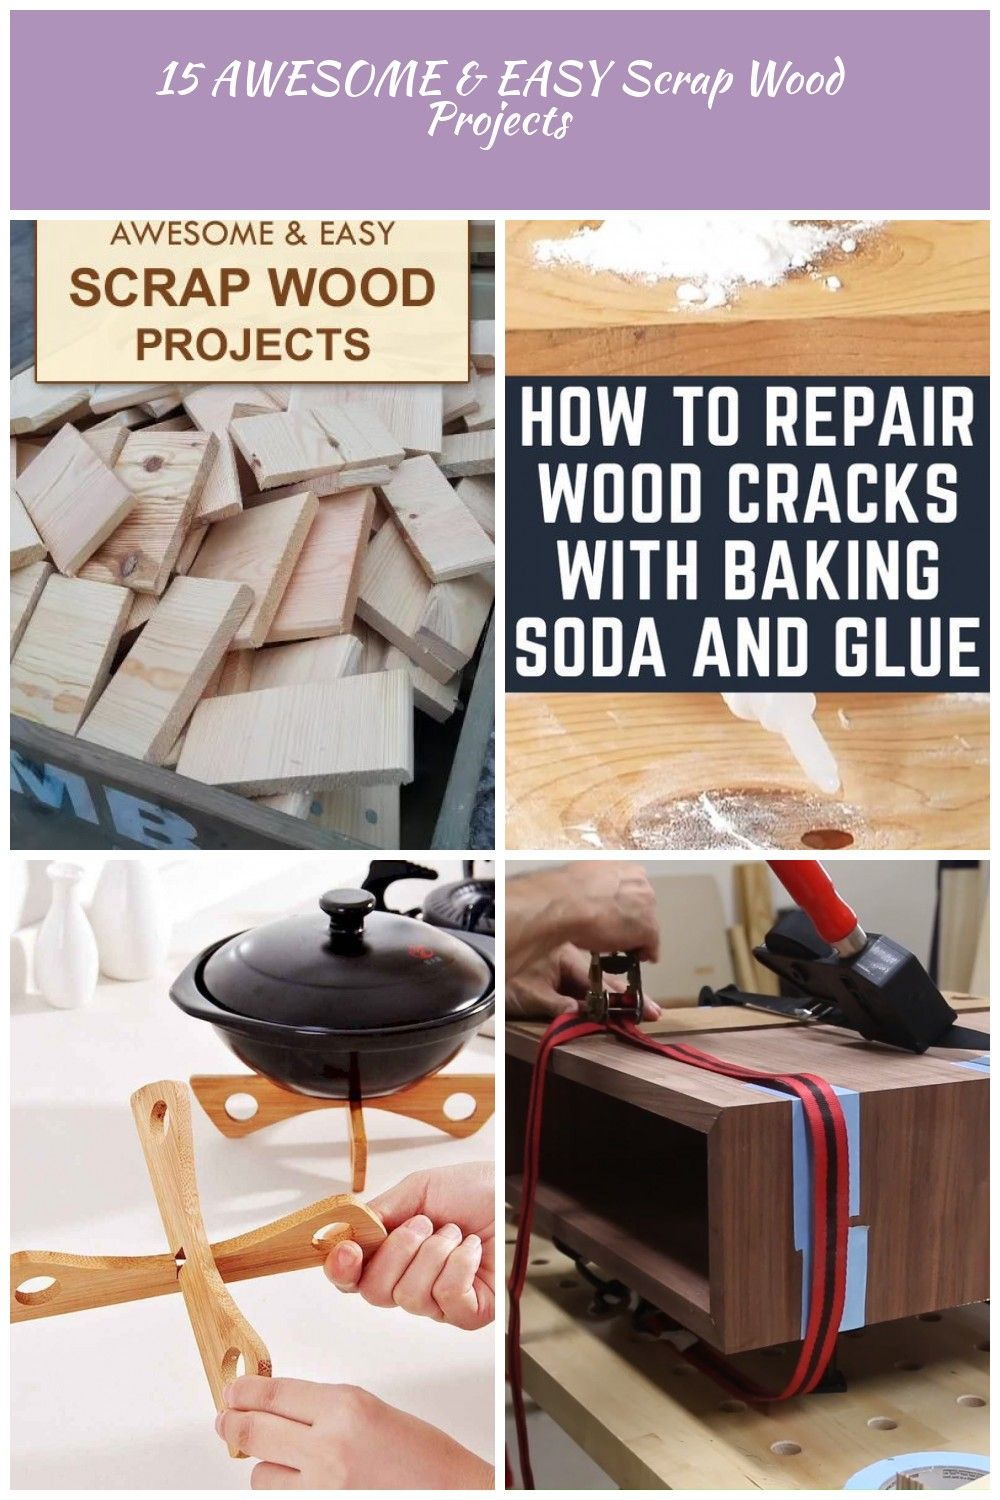 15 Awesome And Easy Scrap Wood Projects Woodworking 15 Awesome Easy Scrap Wood Projects Scrap Wood Projects Wood Projects Woodworking Projects